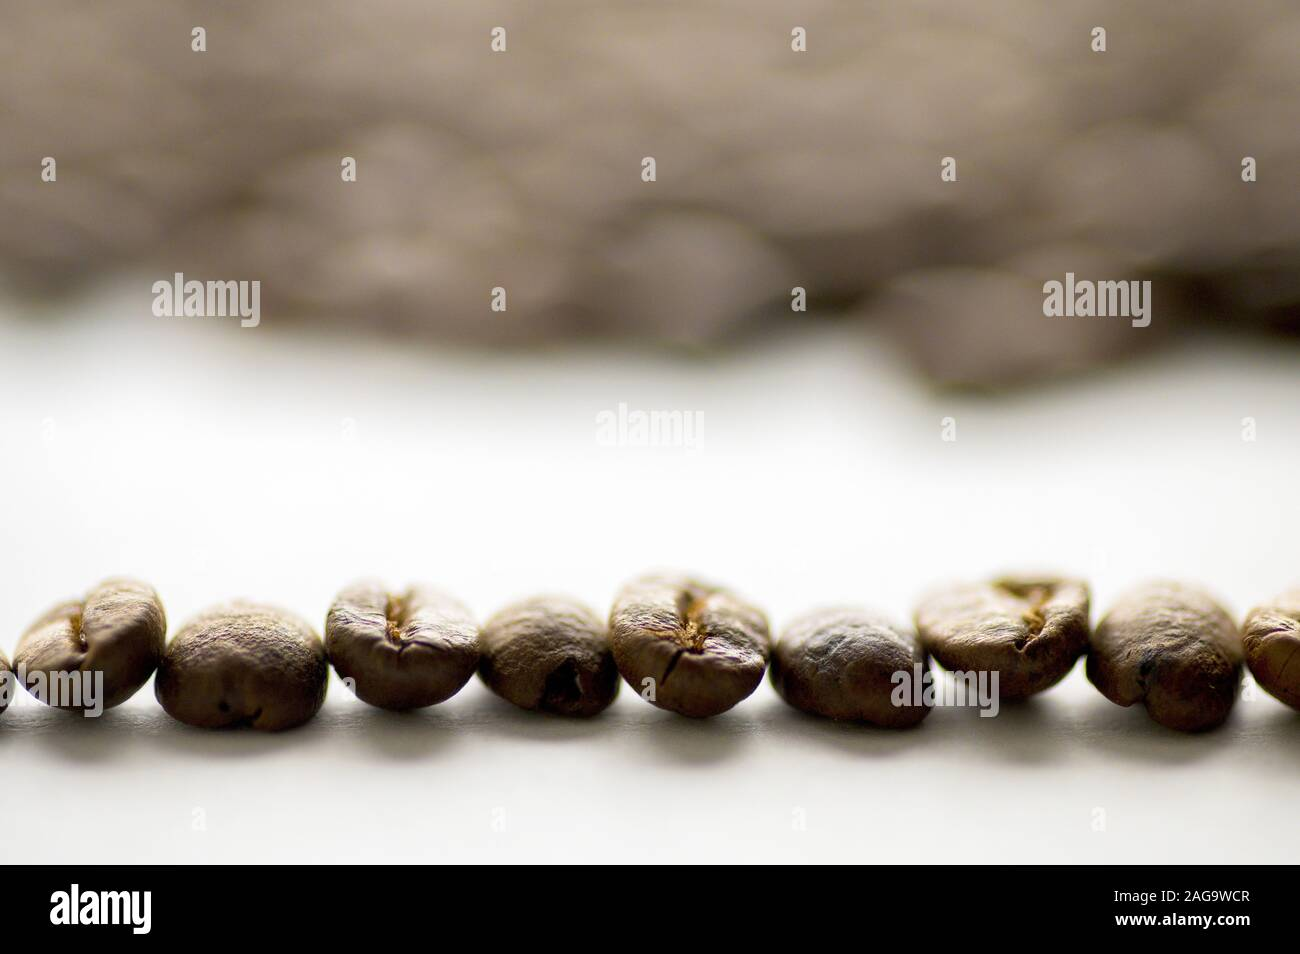 A Closeup Shot Of A Line Of Coffee Beans On A White Surface